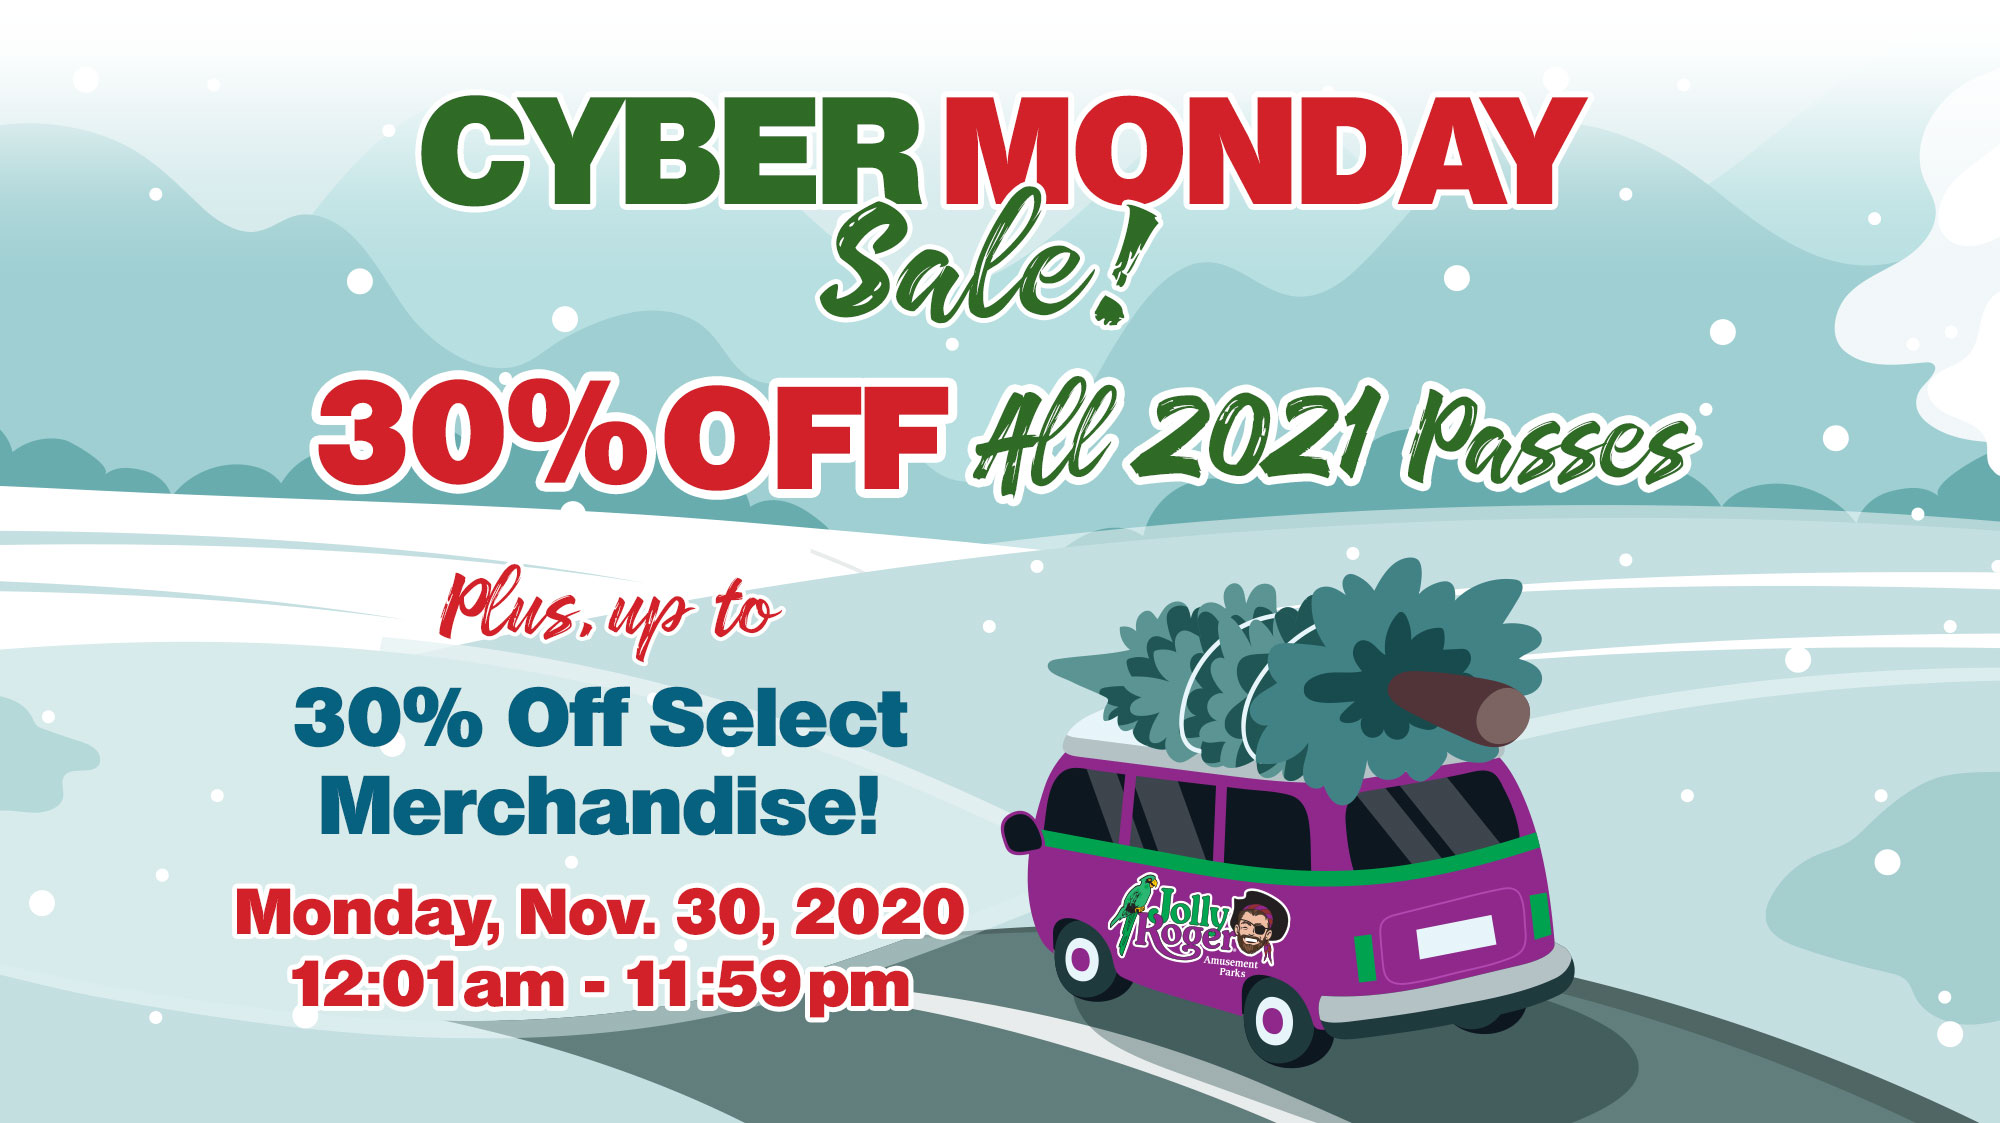 30% OFF All 2021 Passes Plus, Up To 30% Off Select Merchandise! Monday, Nov. 30, 2020 12:01am - 11:59pm